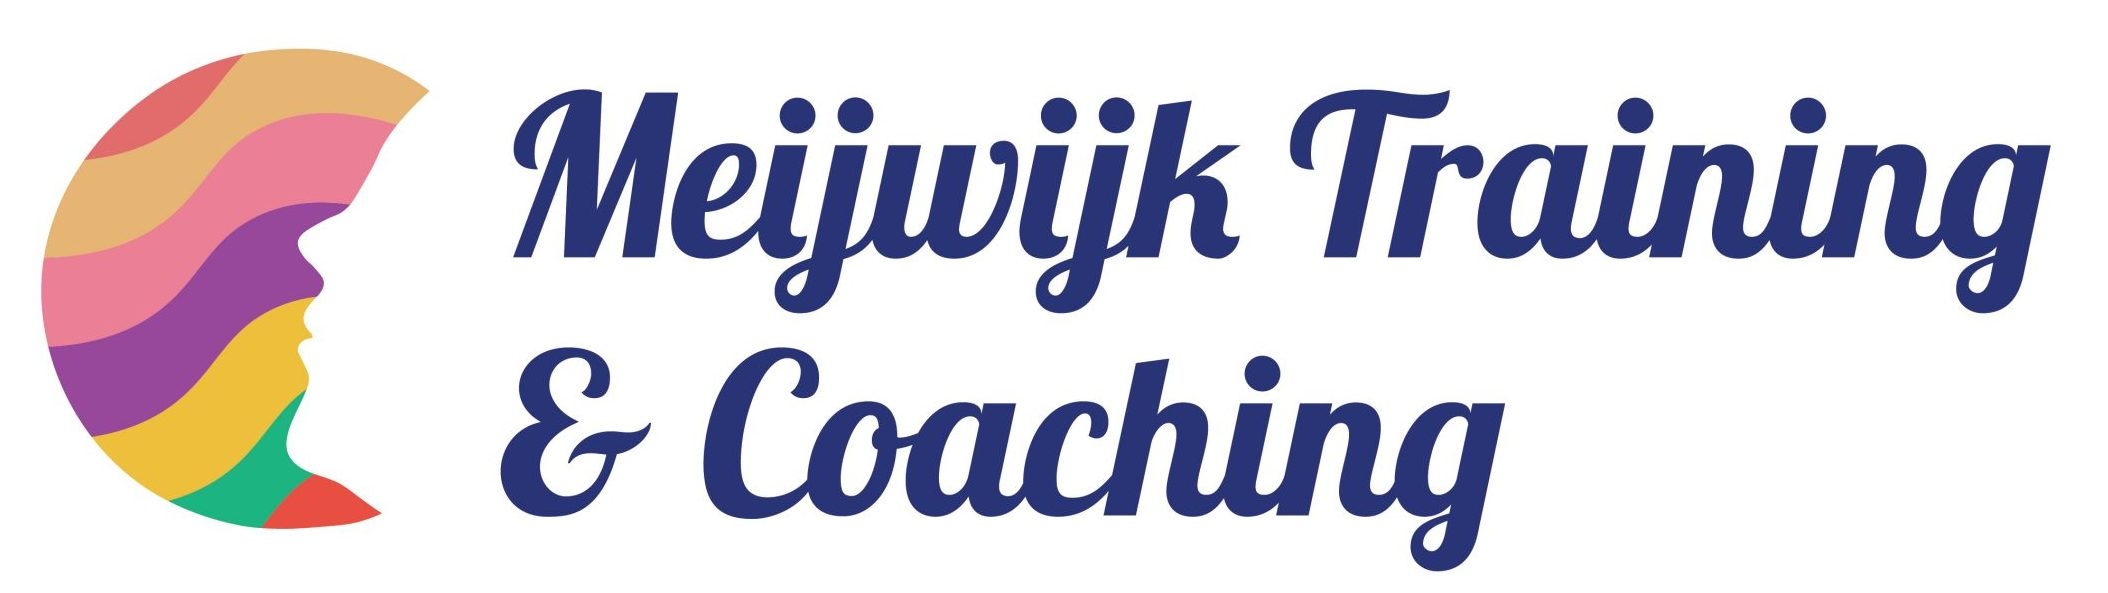 Logo Meijwijk Training & Coaching